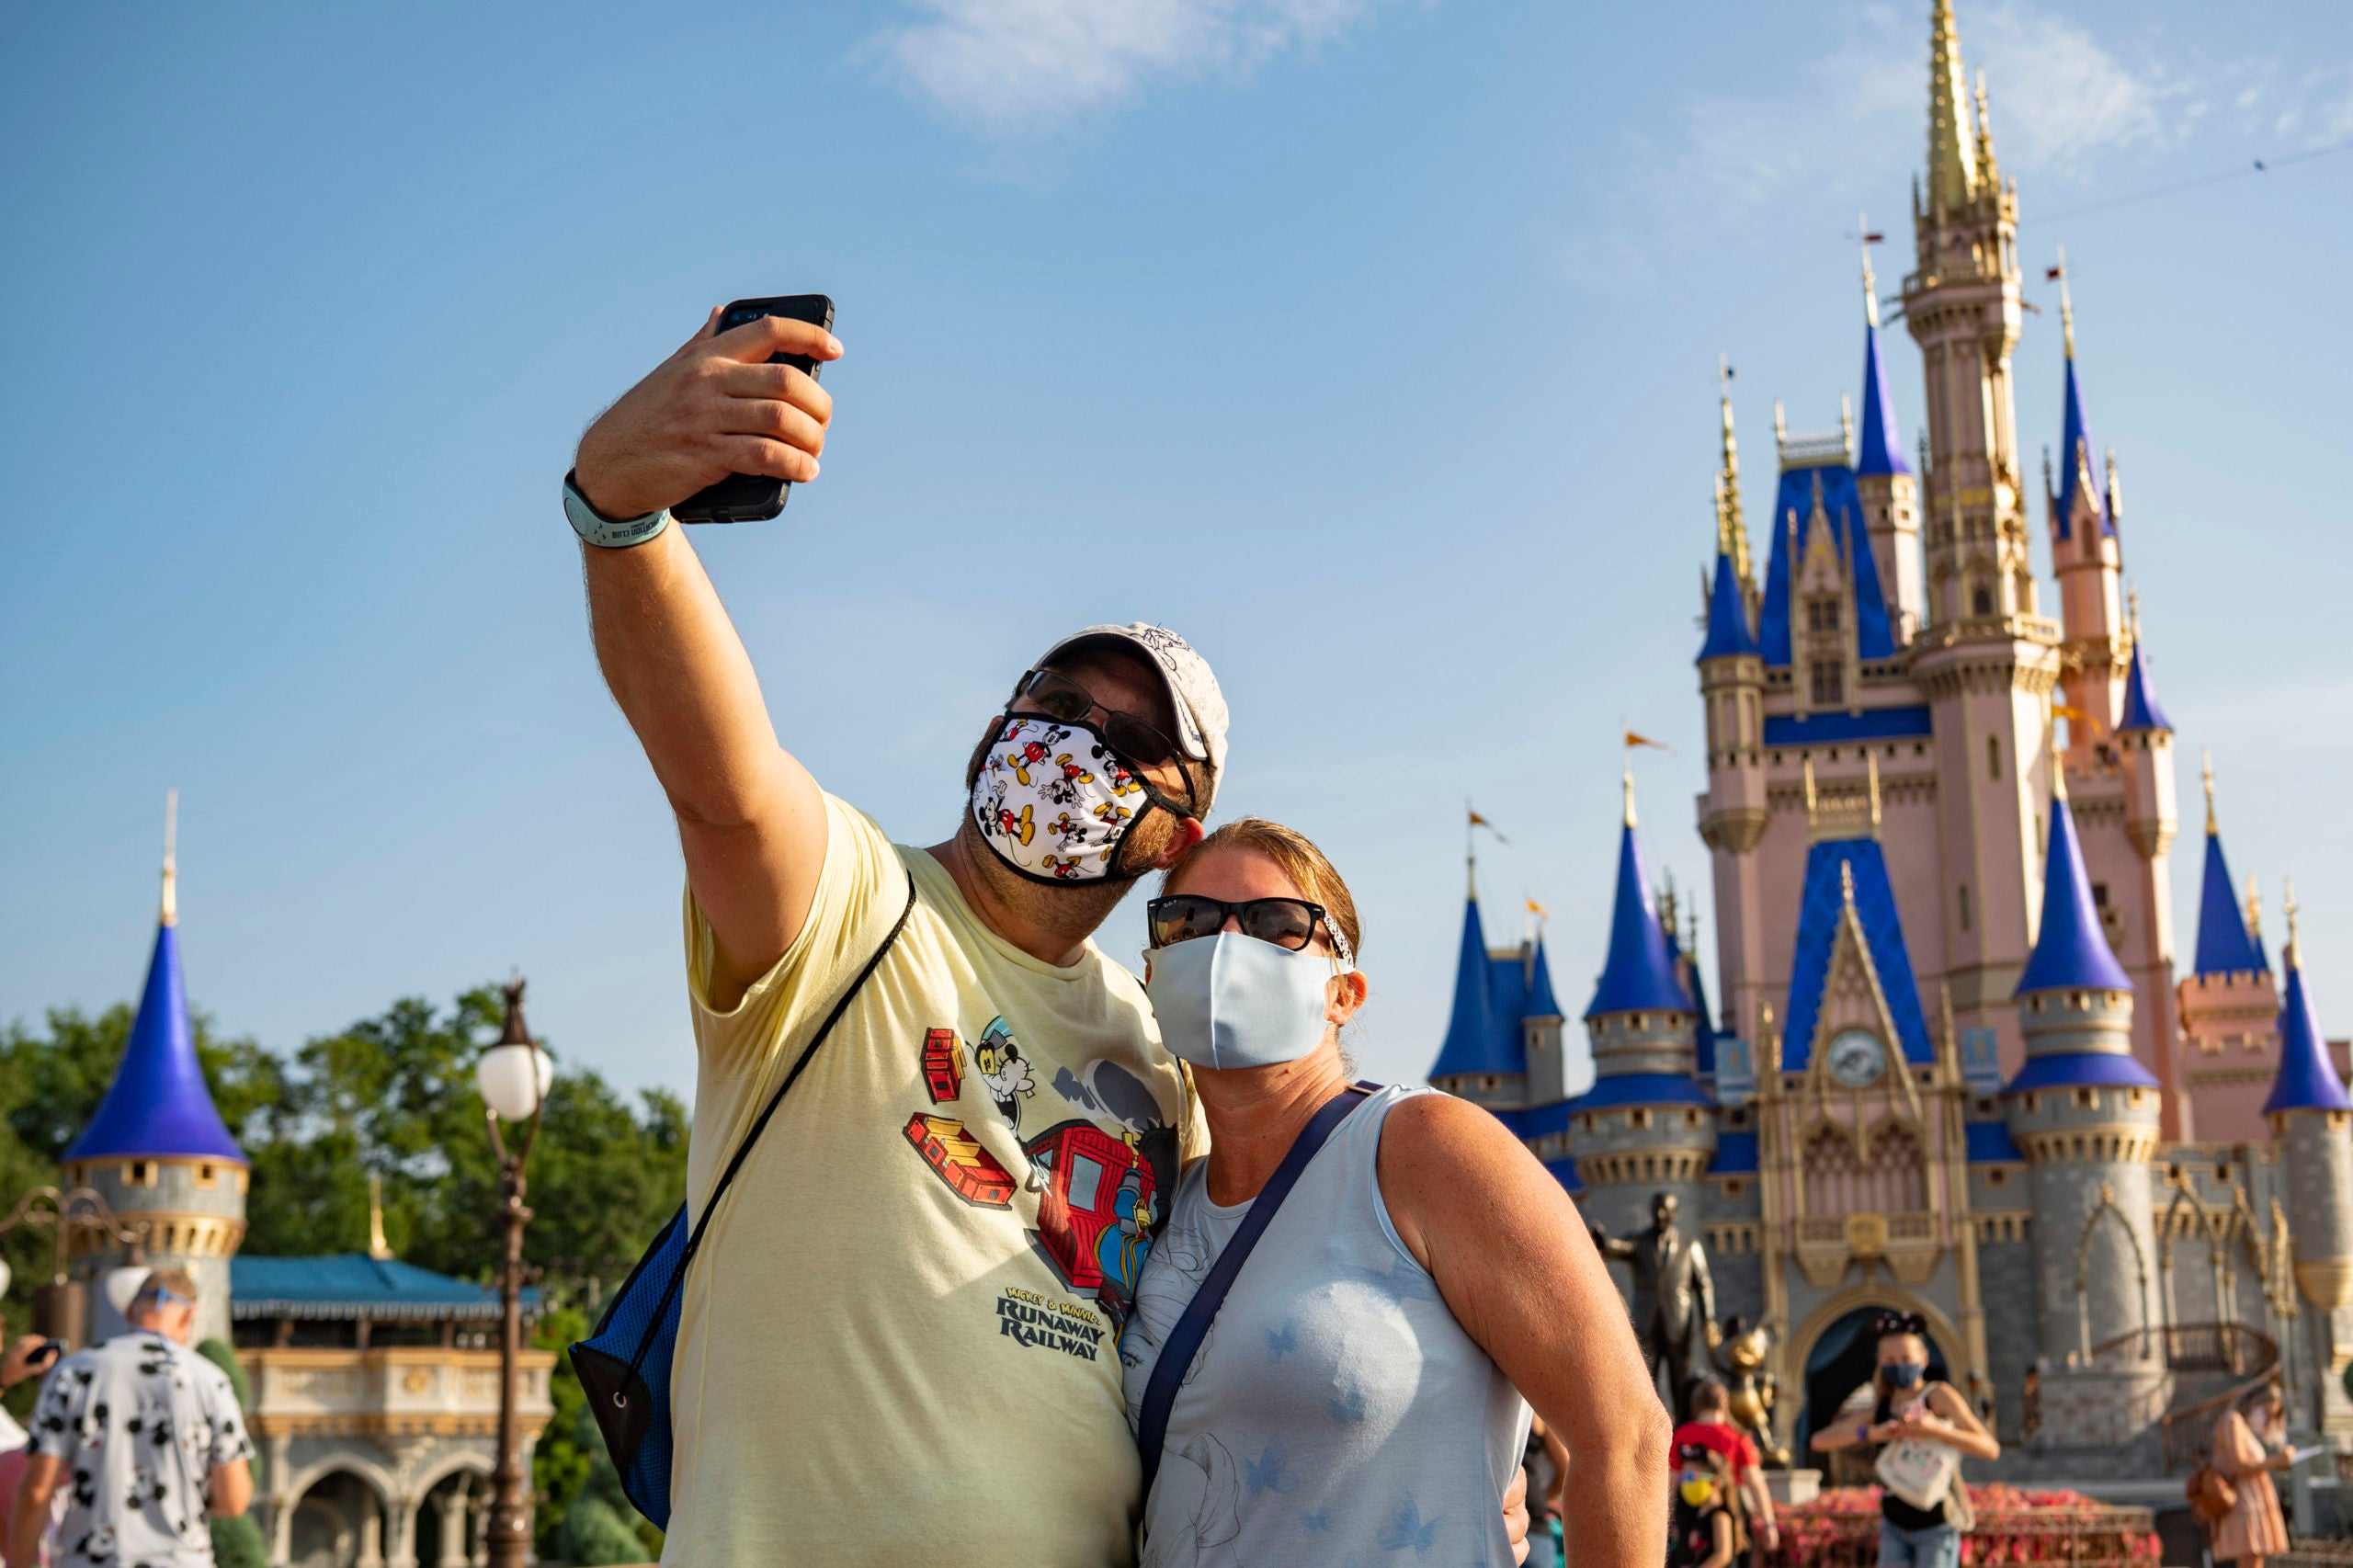 In this handout photo provided by Walt Disney World Resort, guests stop to take a selfie at Magic Kingdom Park at Walt Disney World Resort on July 11, 2020 in Lake Buena Vista, Florida. July 11, 2020 is the first day of the phased reopening. (Photo by Matt Stroshane/Walt Disney World Resort via Getty Images)